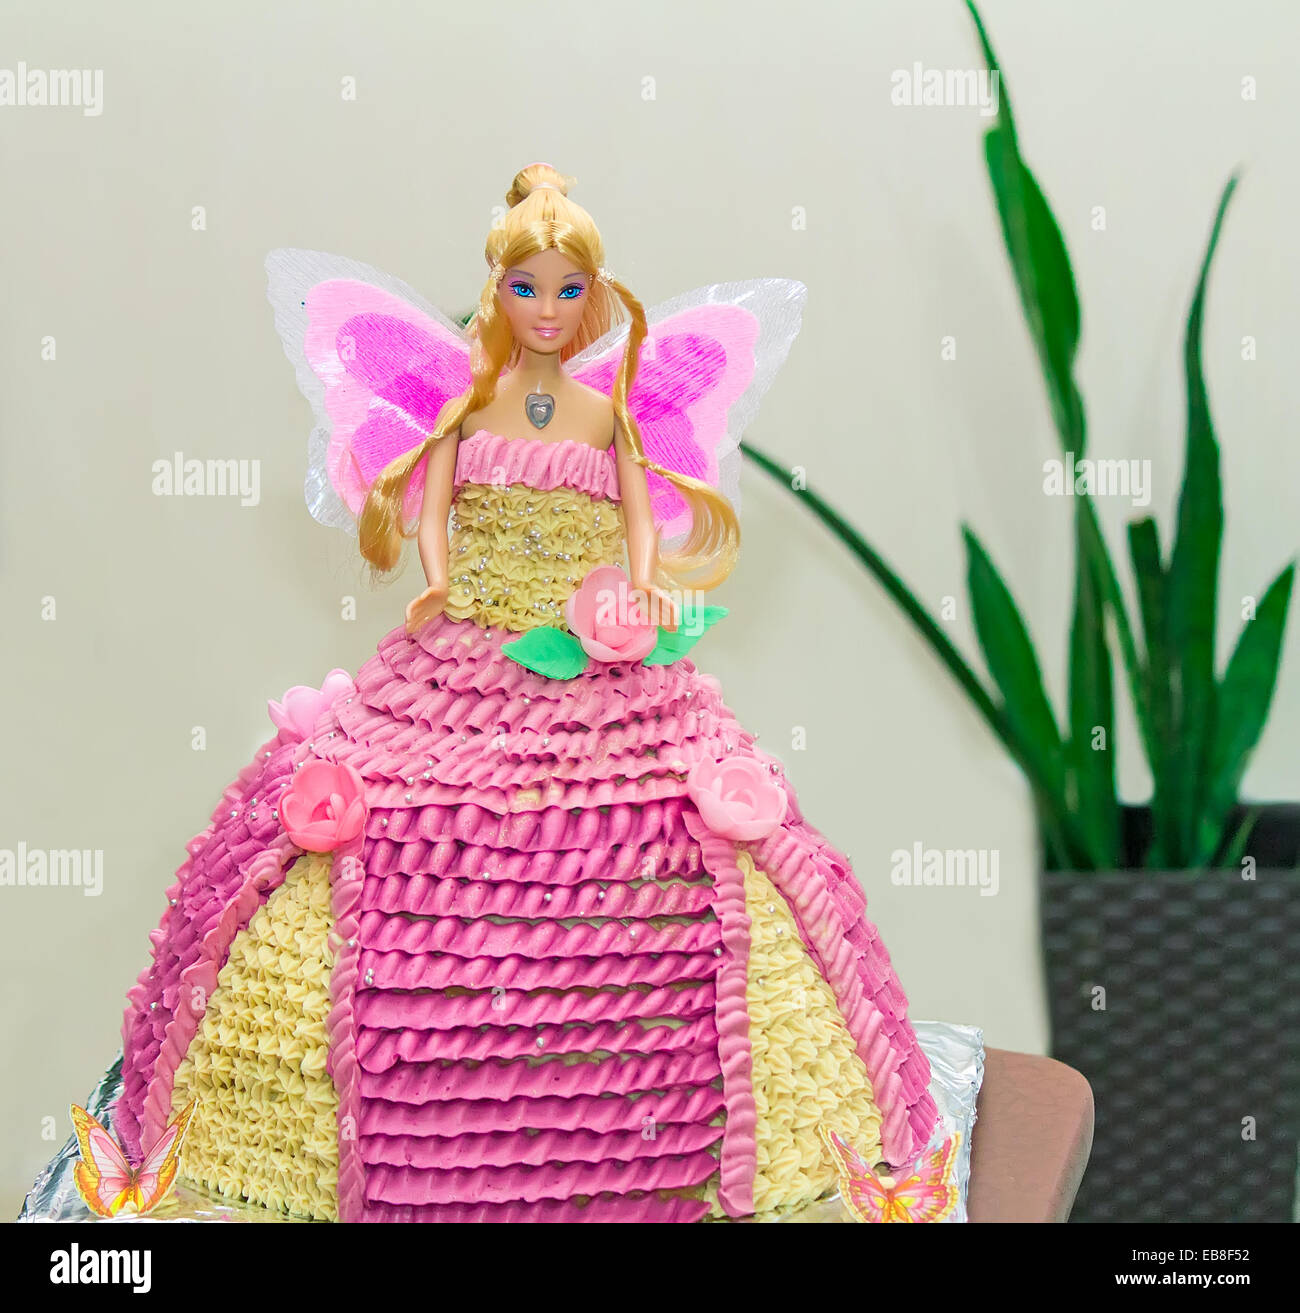 Beautiful birthday cake in the form of a doll in a wide dress made